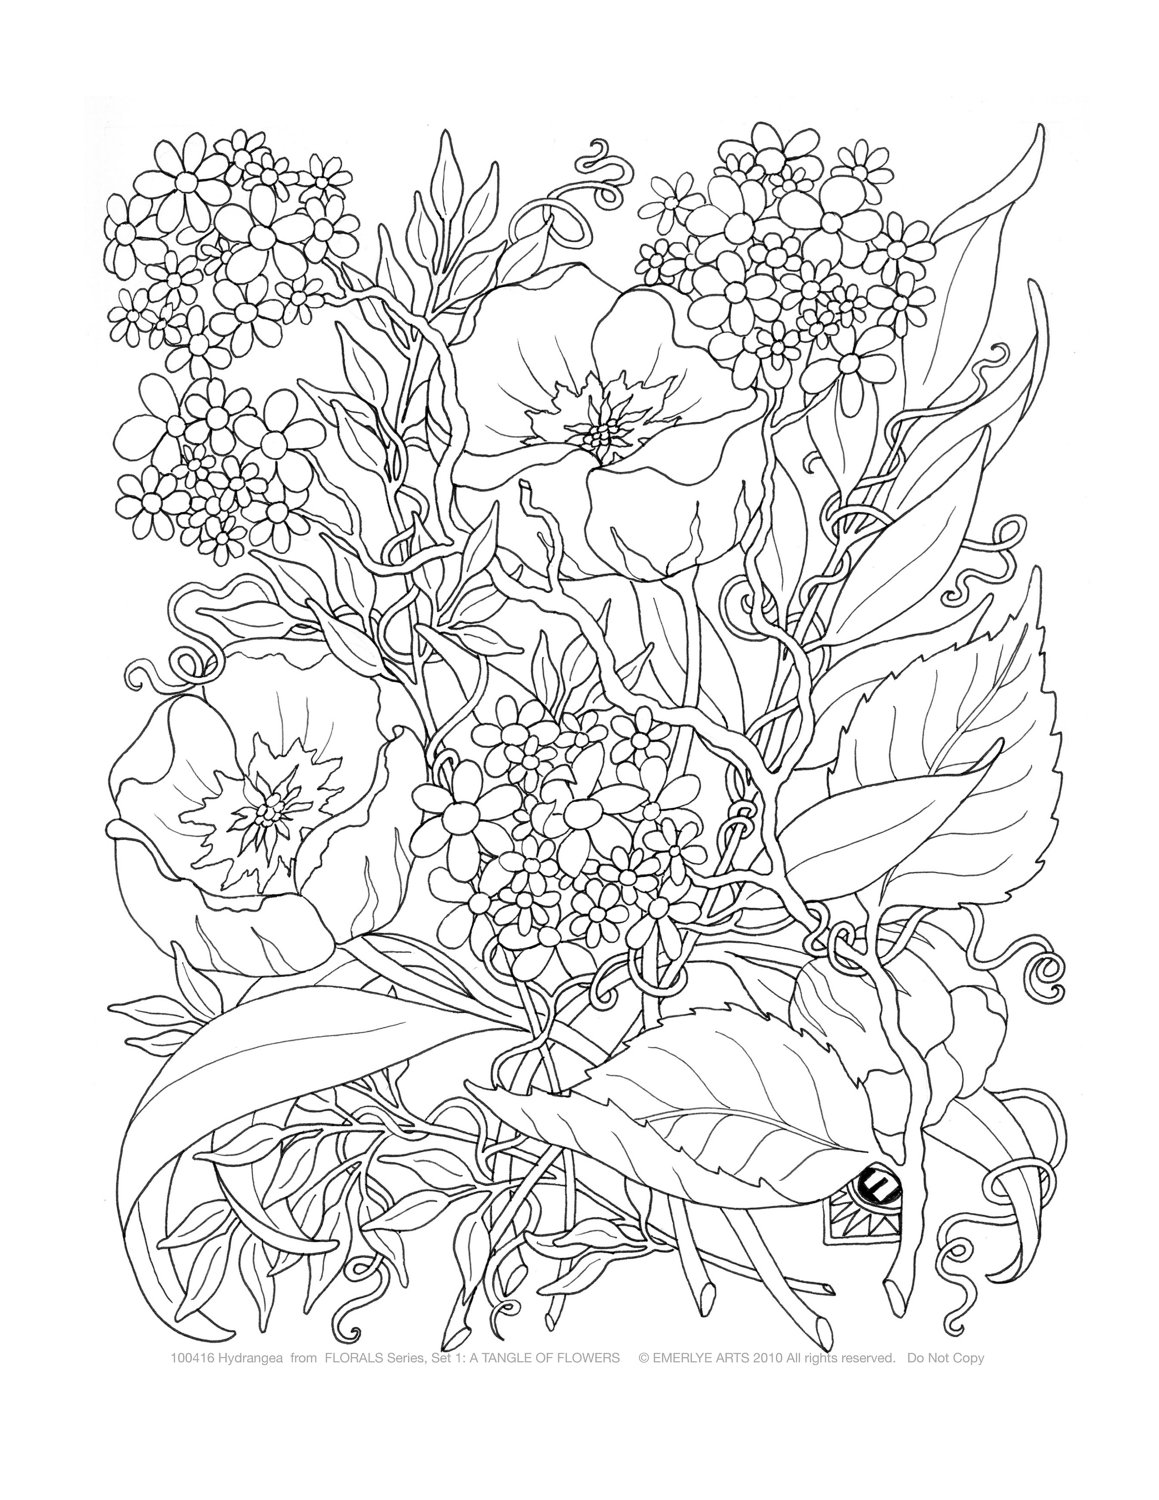 detailed flower coloring pages detailed flower coloring pages to download and print for free detailed flower pages coloring 1 1